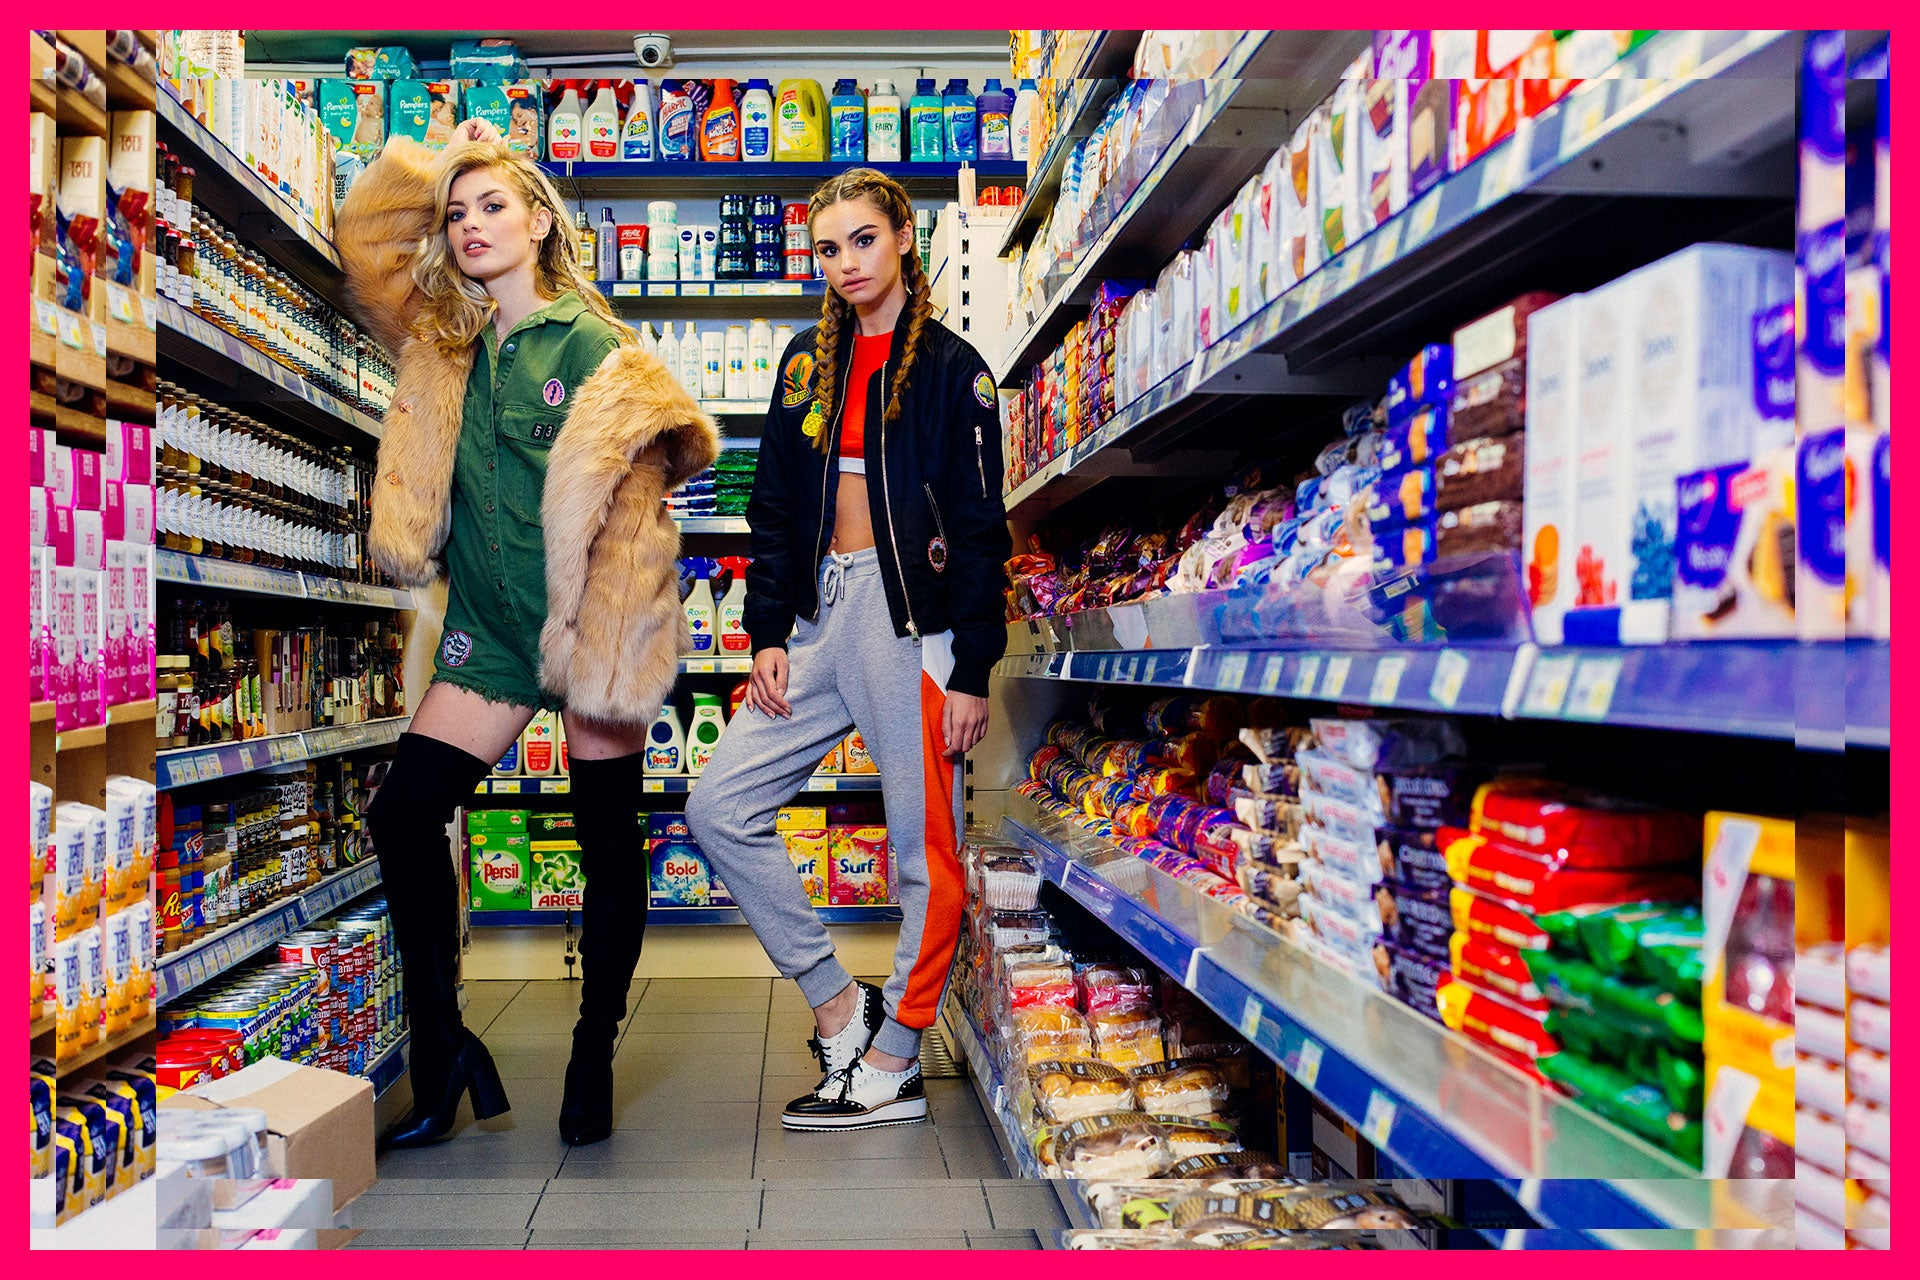 two young girls standing in shop aisle